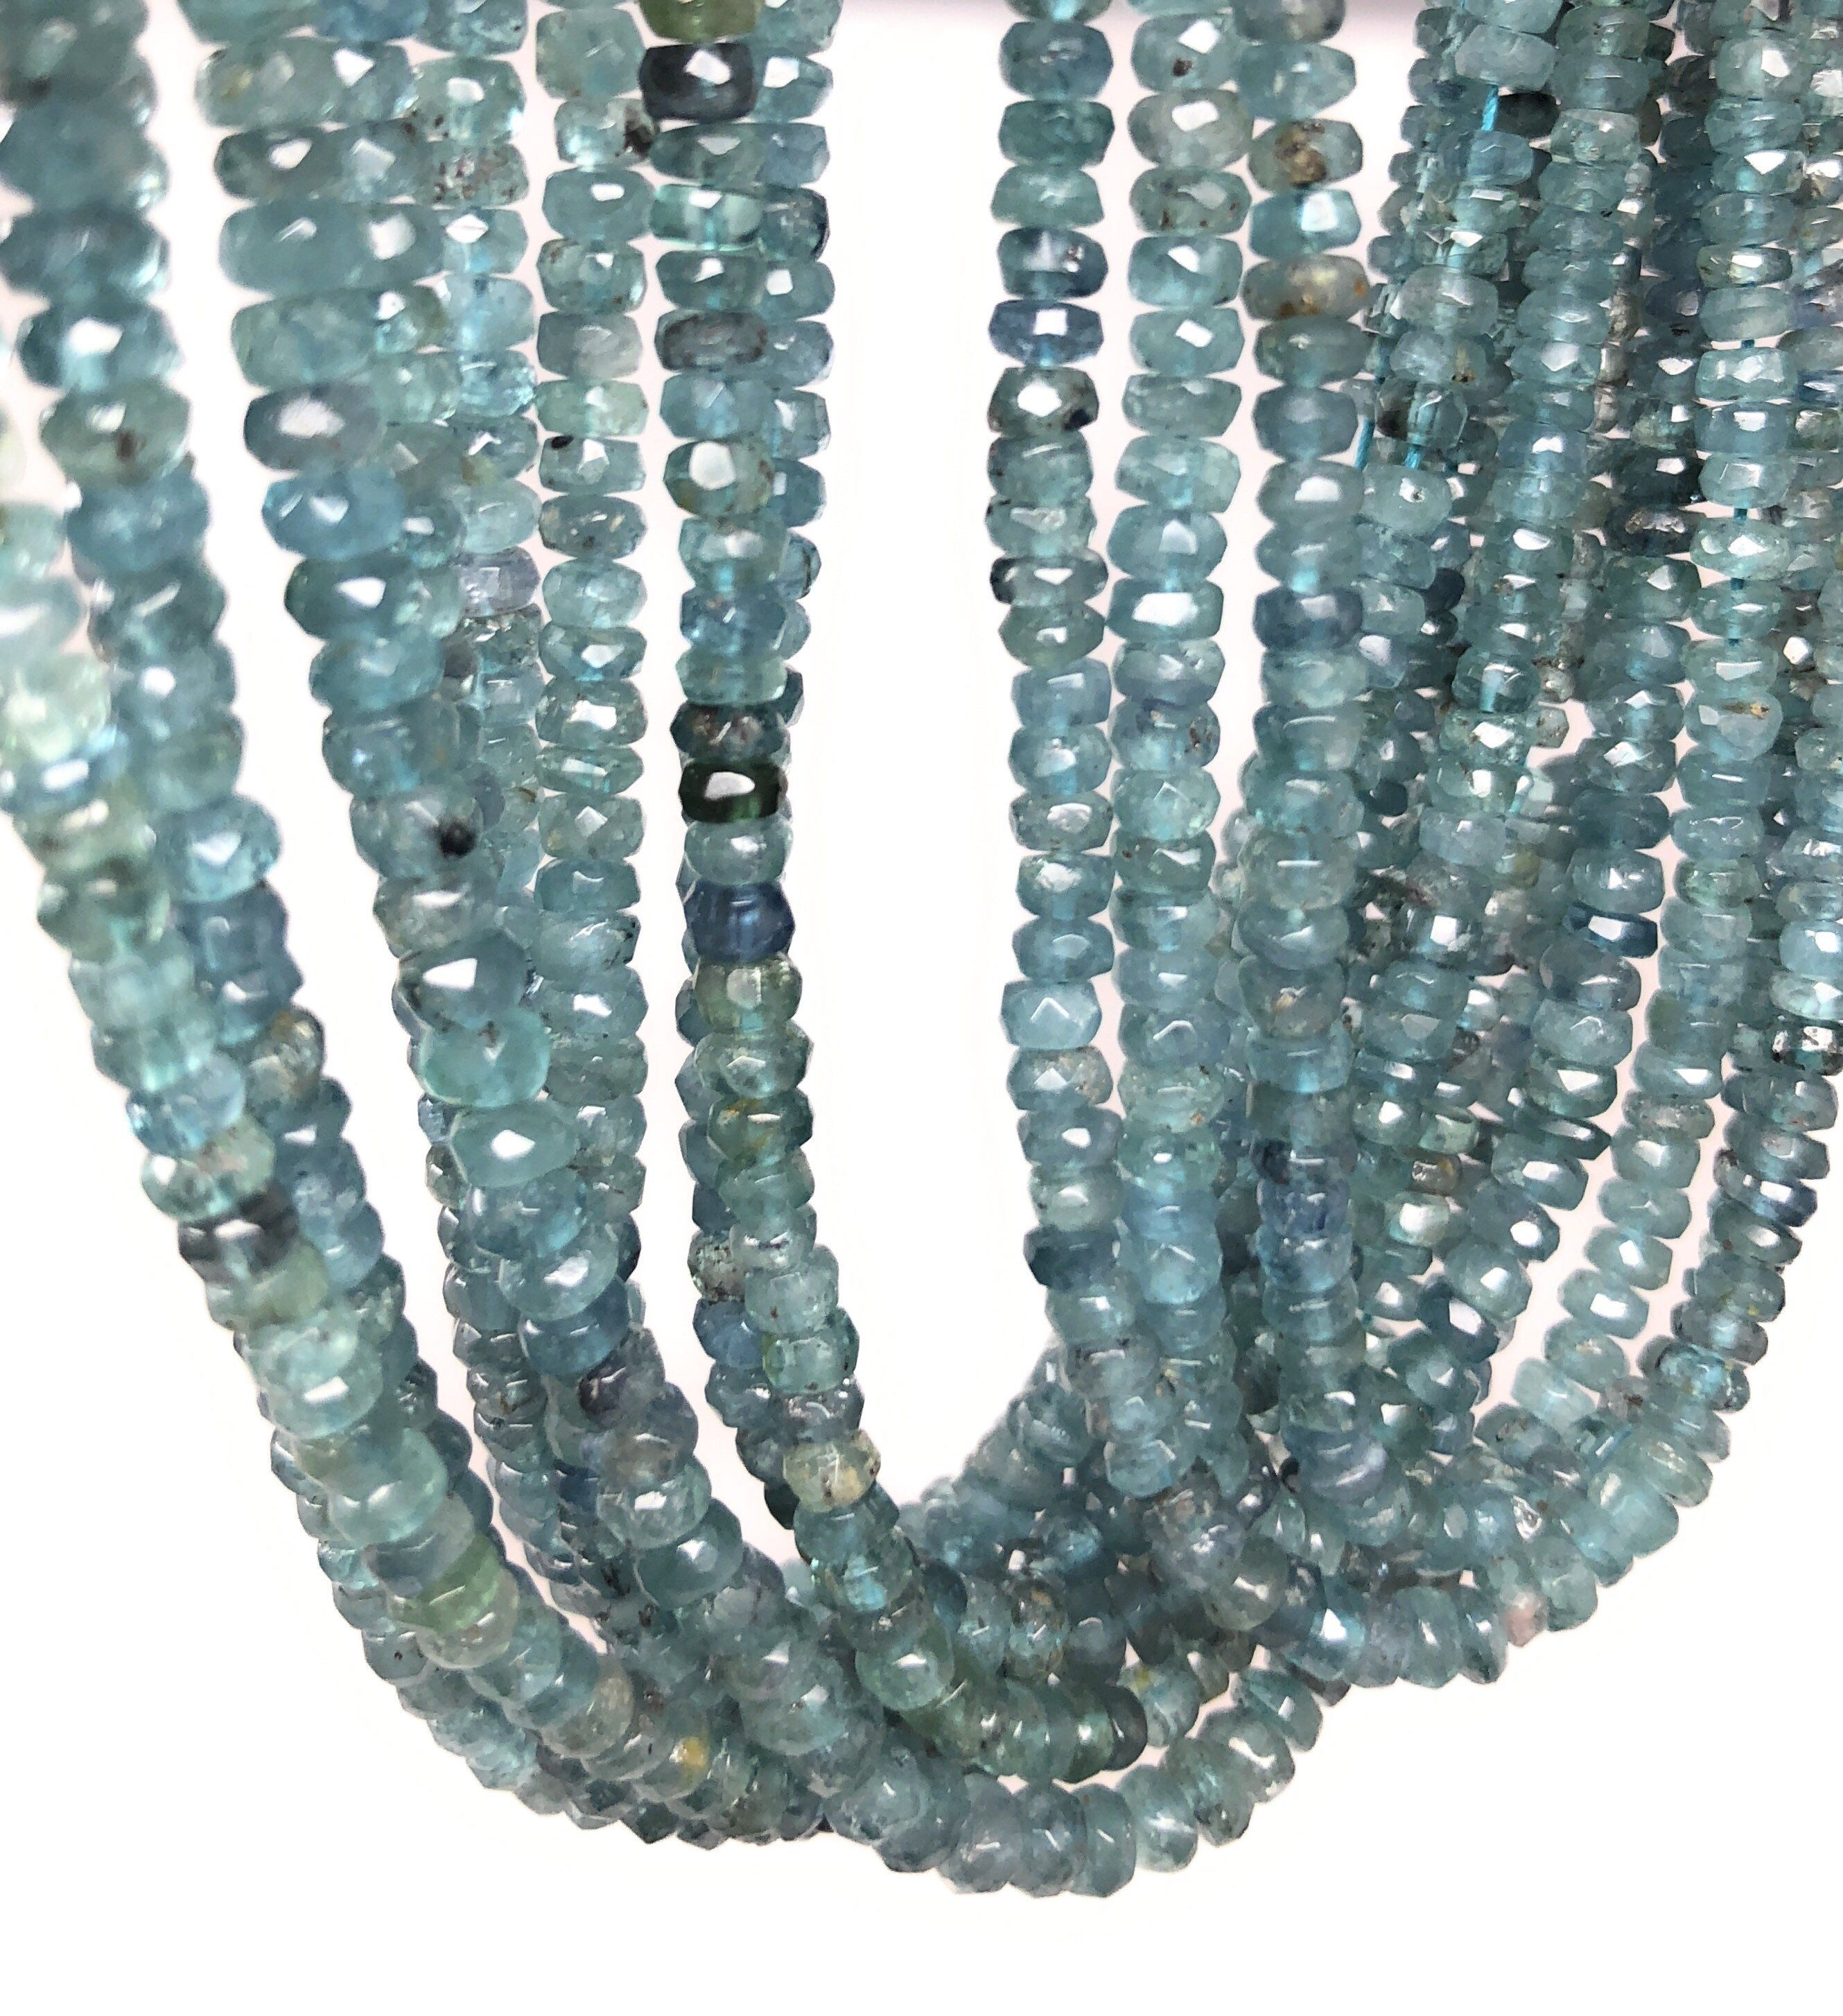 5 Strand Natural Multi Aquamarine Micro Faceted Rondelle Beads 2.5mm 17 Strand